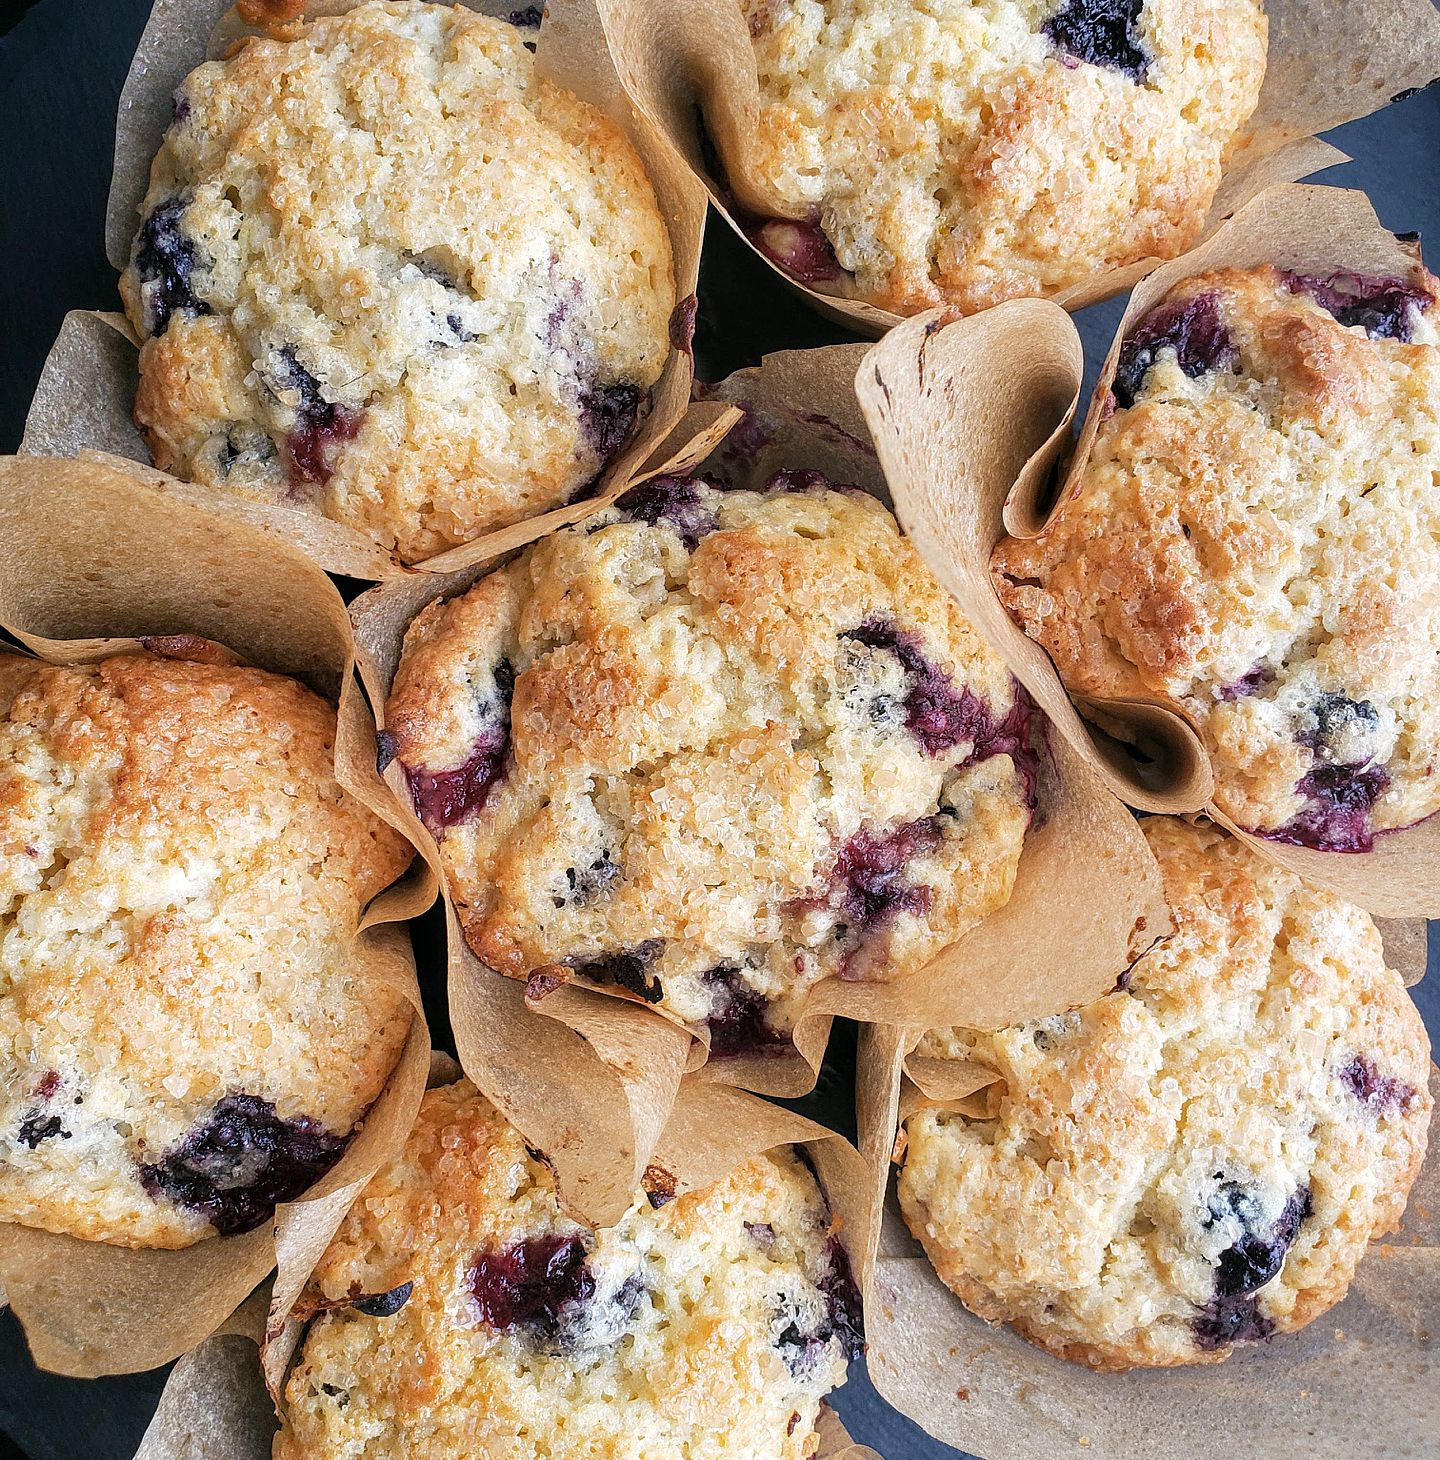 Lemon Blueberry Buttermilk Muffins The Best Recipe Chenee Today Recipe In 2020 Blue Berry Muffins Buttermilk Blueberry Muffins Muffin Recipes Blueberry